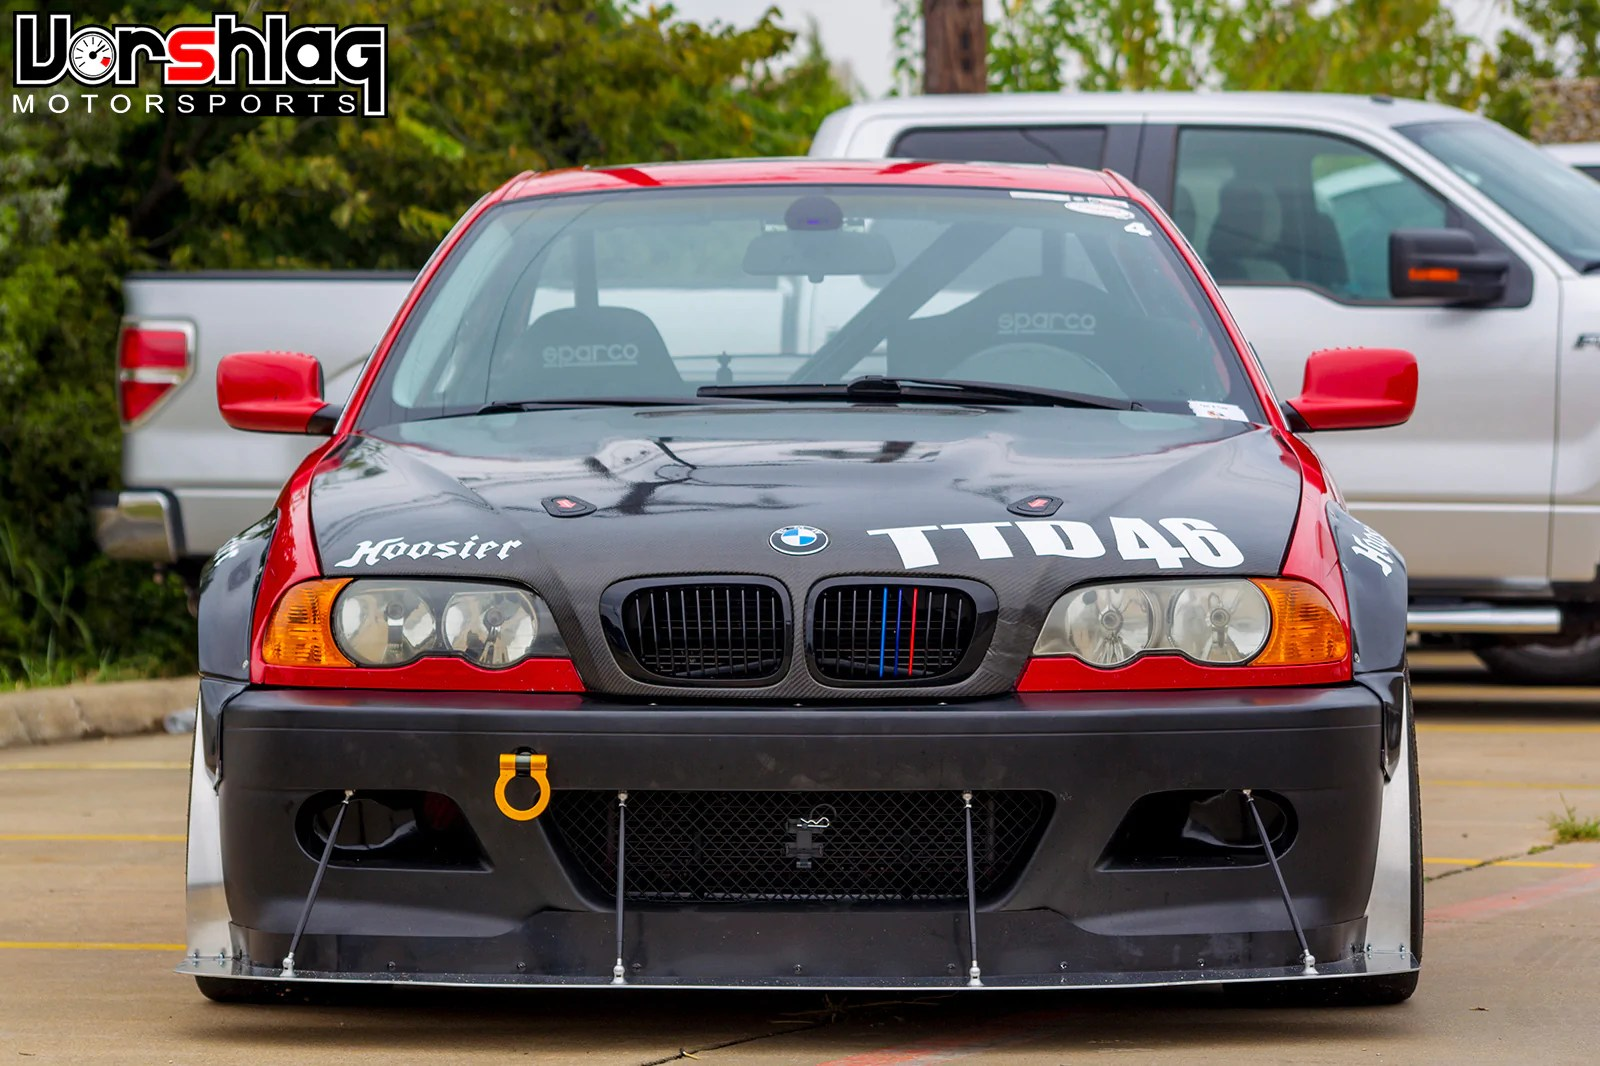 small resolution of  hard motorsport brake duct inlets and fog light delete bmw e46 m3 zhp